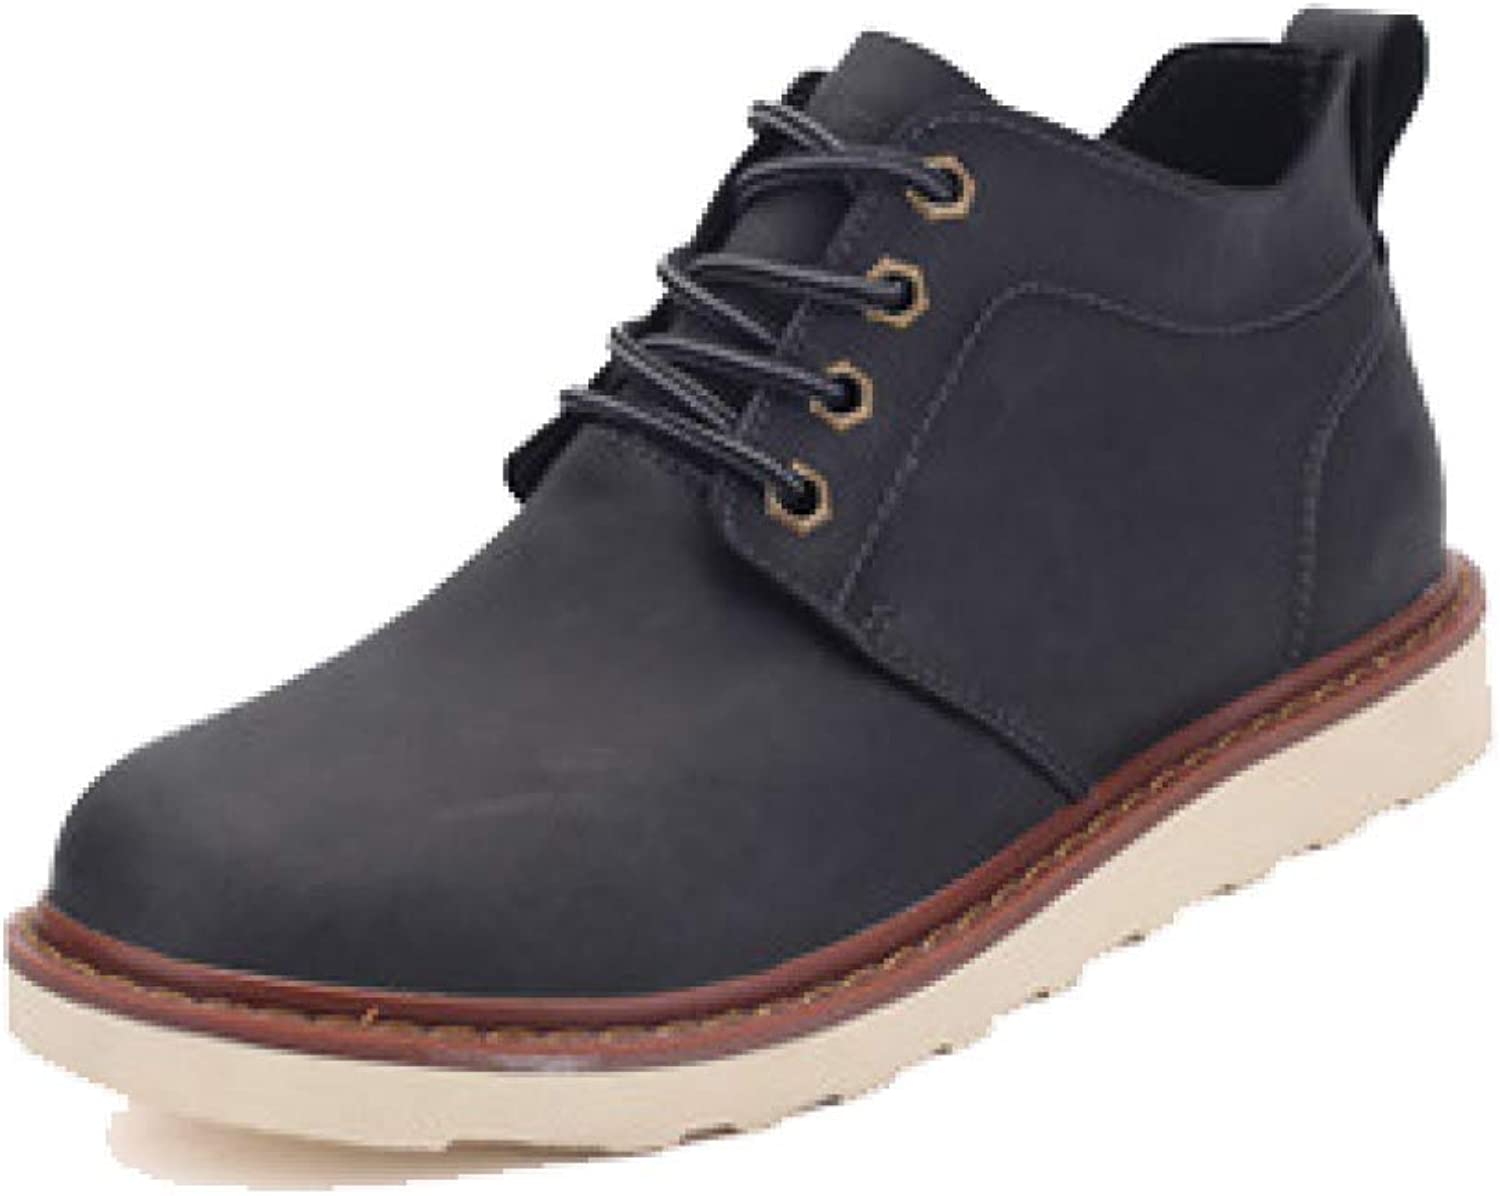 LYZGF, Men, England, Martin Boots, Fashion, Casual, Vintage, Desert, Leather Boots